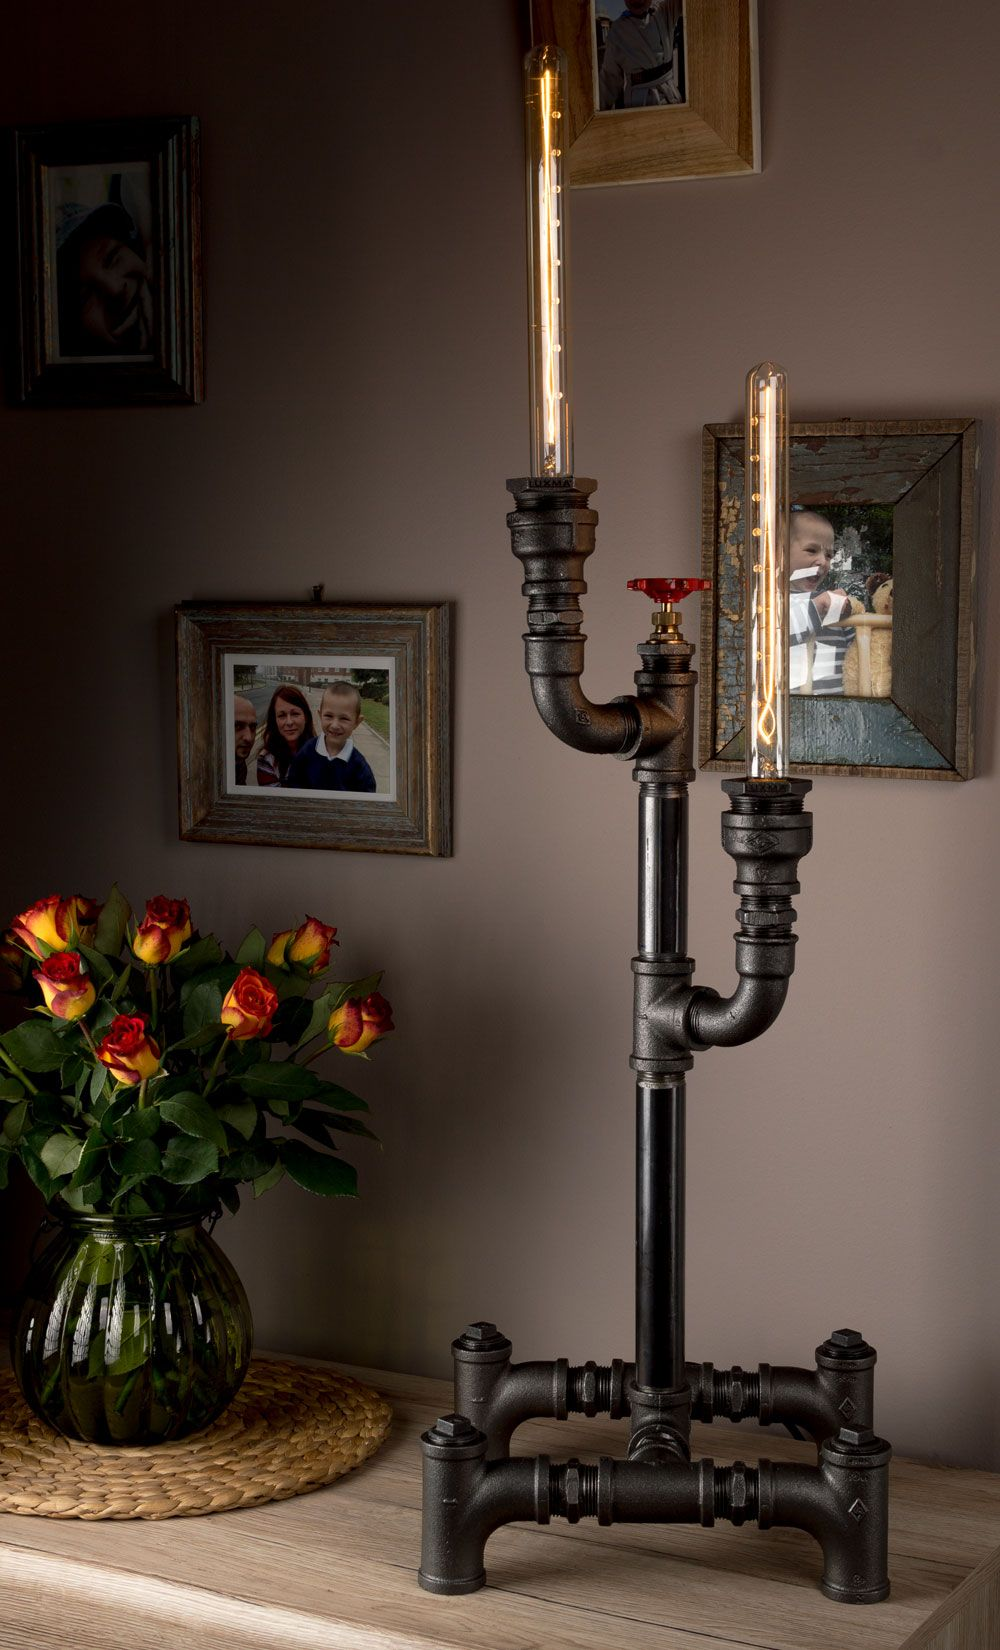 Amazing Pipe Desk Reading Lamps and Table Lamps for Living Room ...